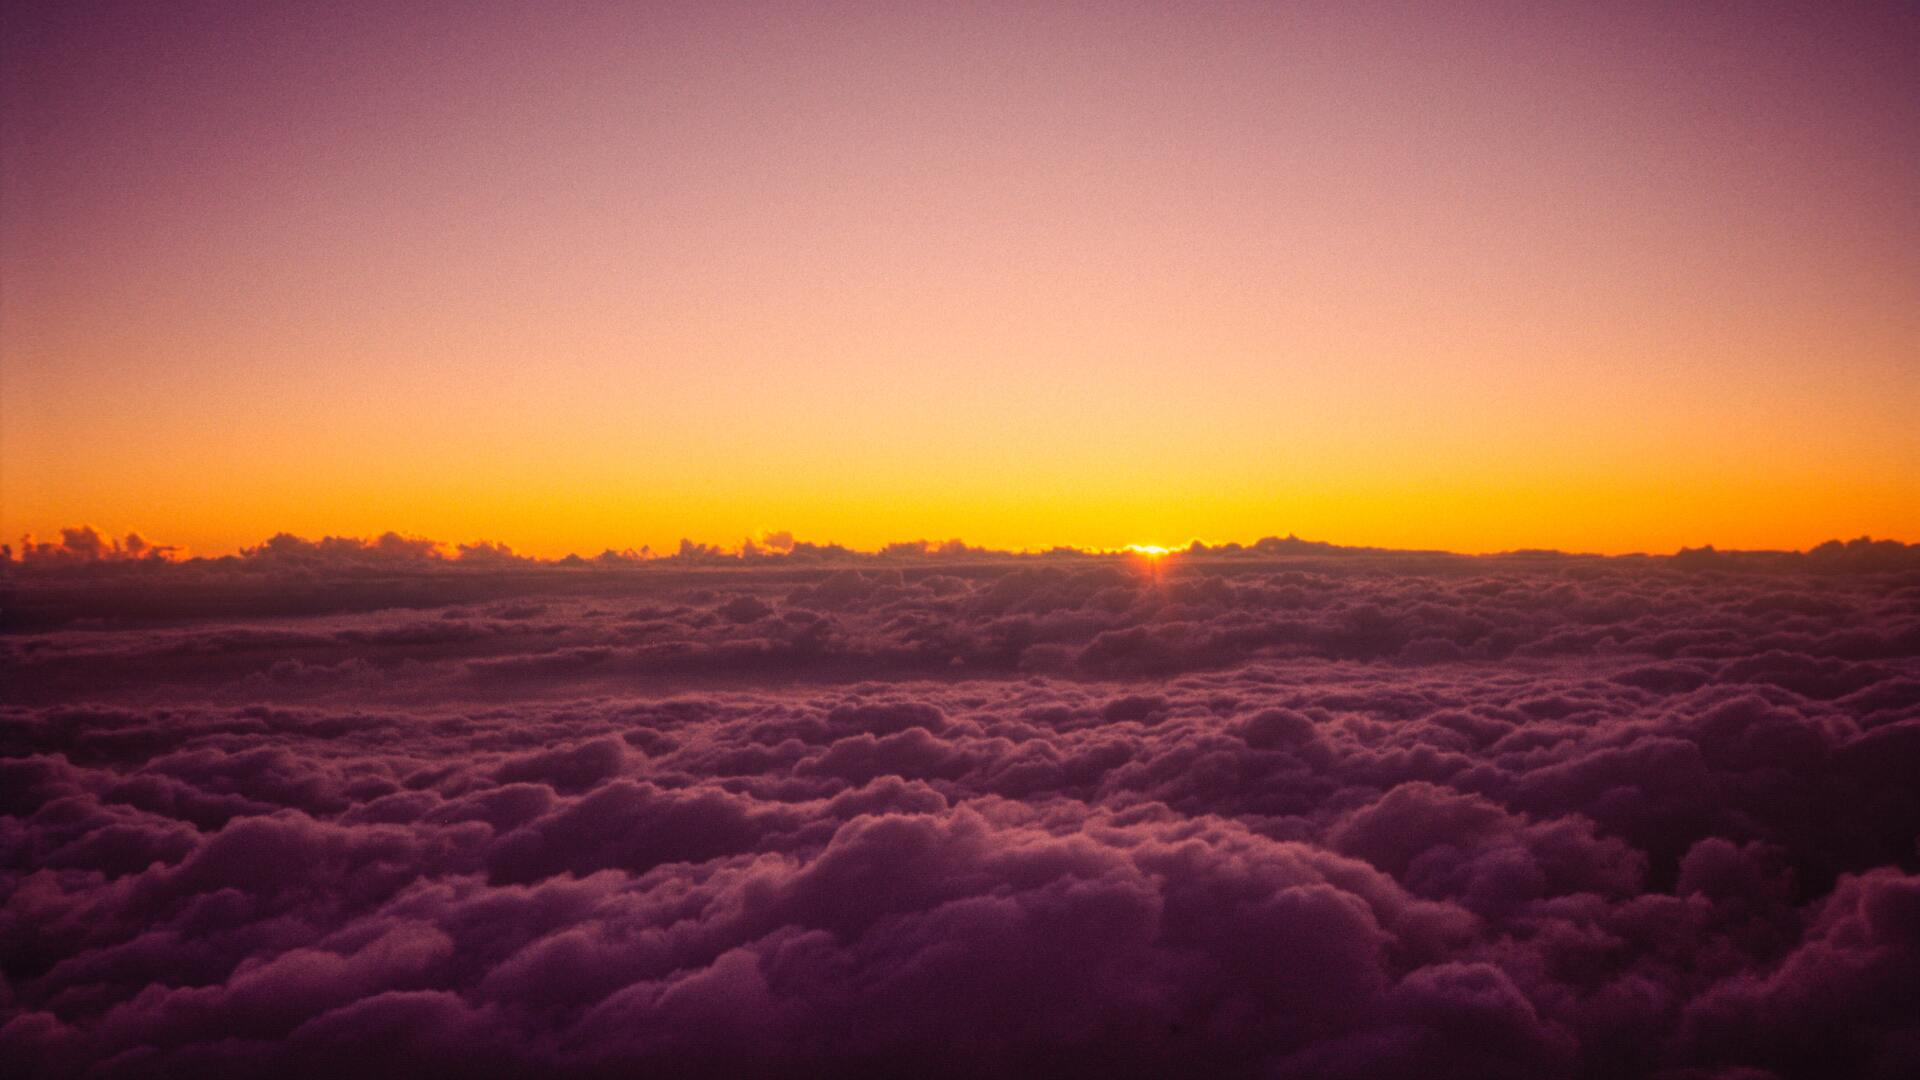 sun-rises-over-the-clouds-from-on-top-of-mount-fuji-5k-qh.jpg